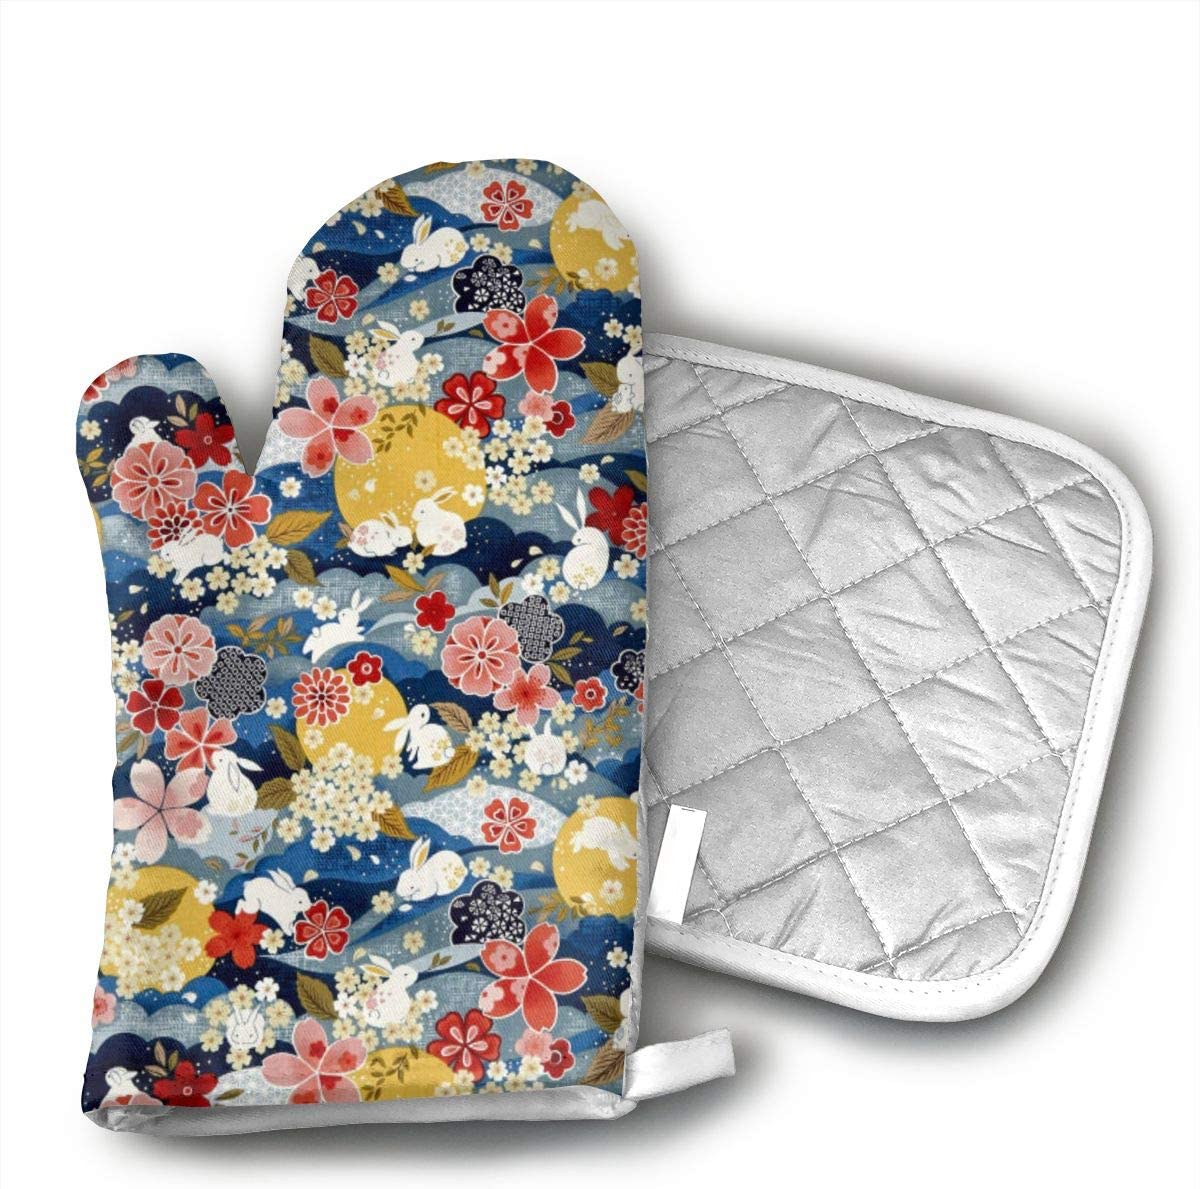 Ydsgjds The Moon Rabbit Oriental Floral Blue Oven Mitts and BBQ Gloves Pot Holders,Kitchen Gloves for Grilling Machine Baking Grilling with Non-Slip